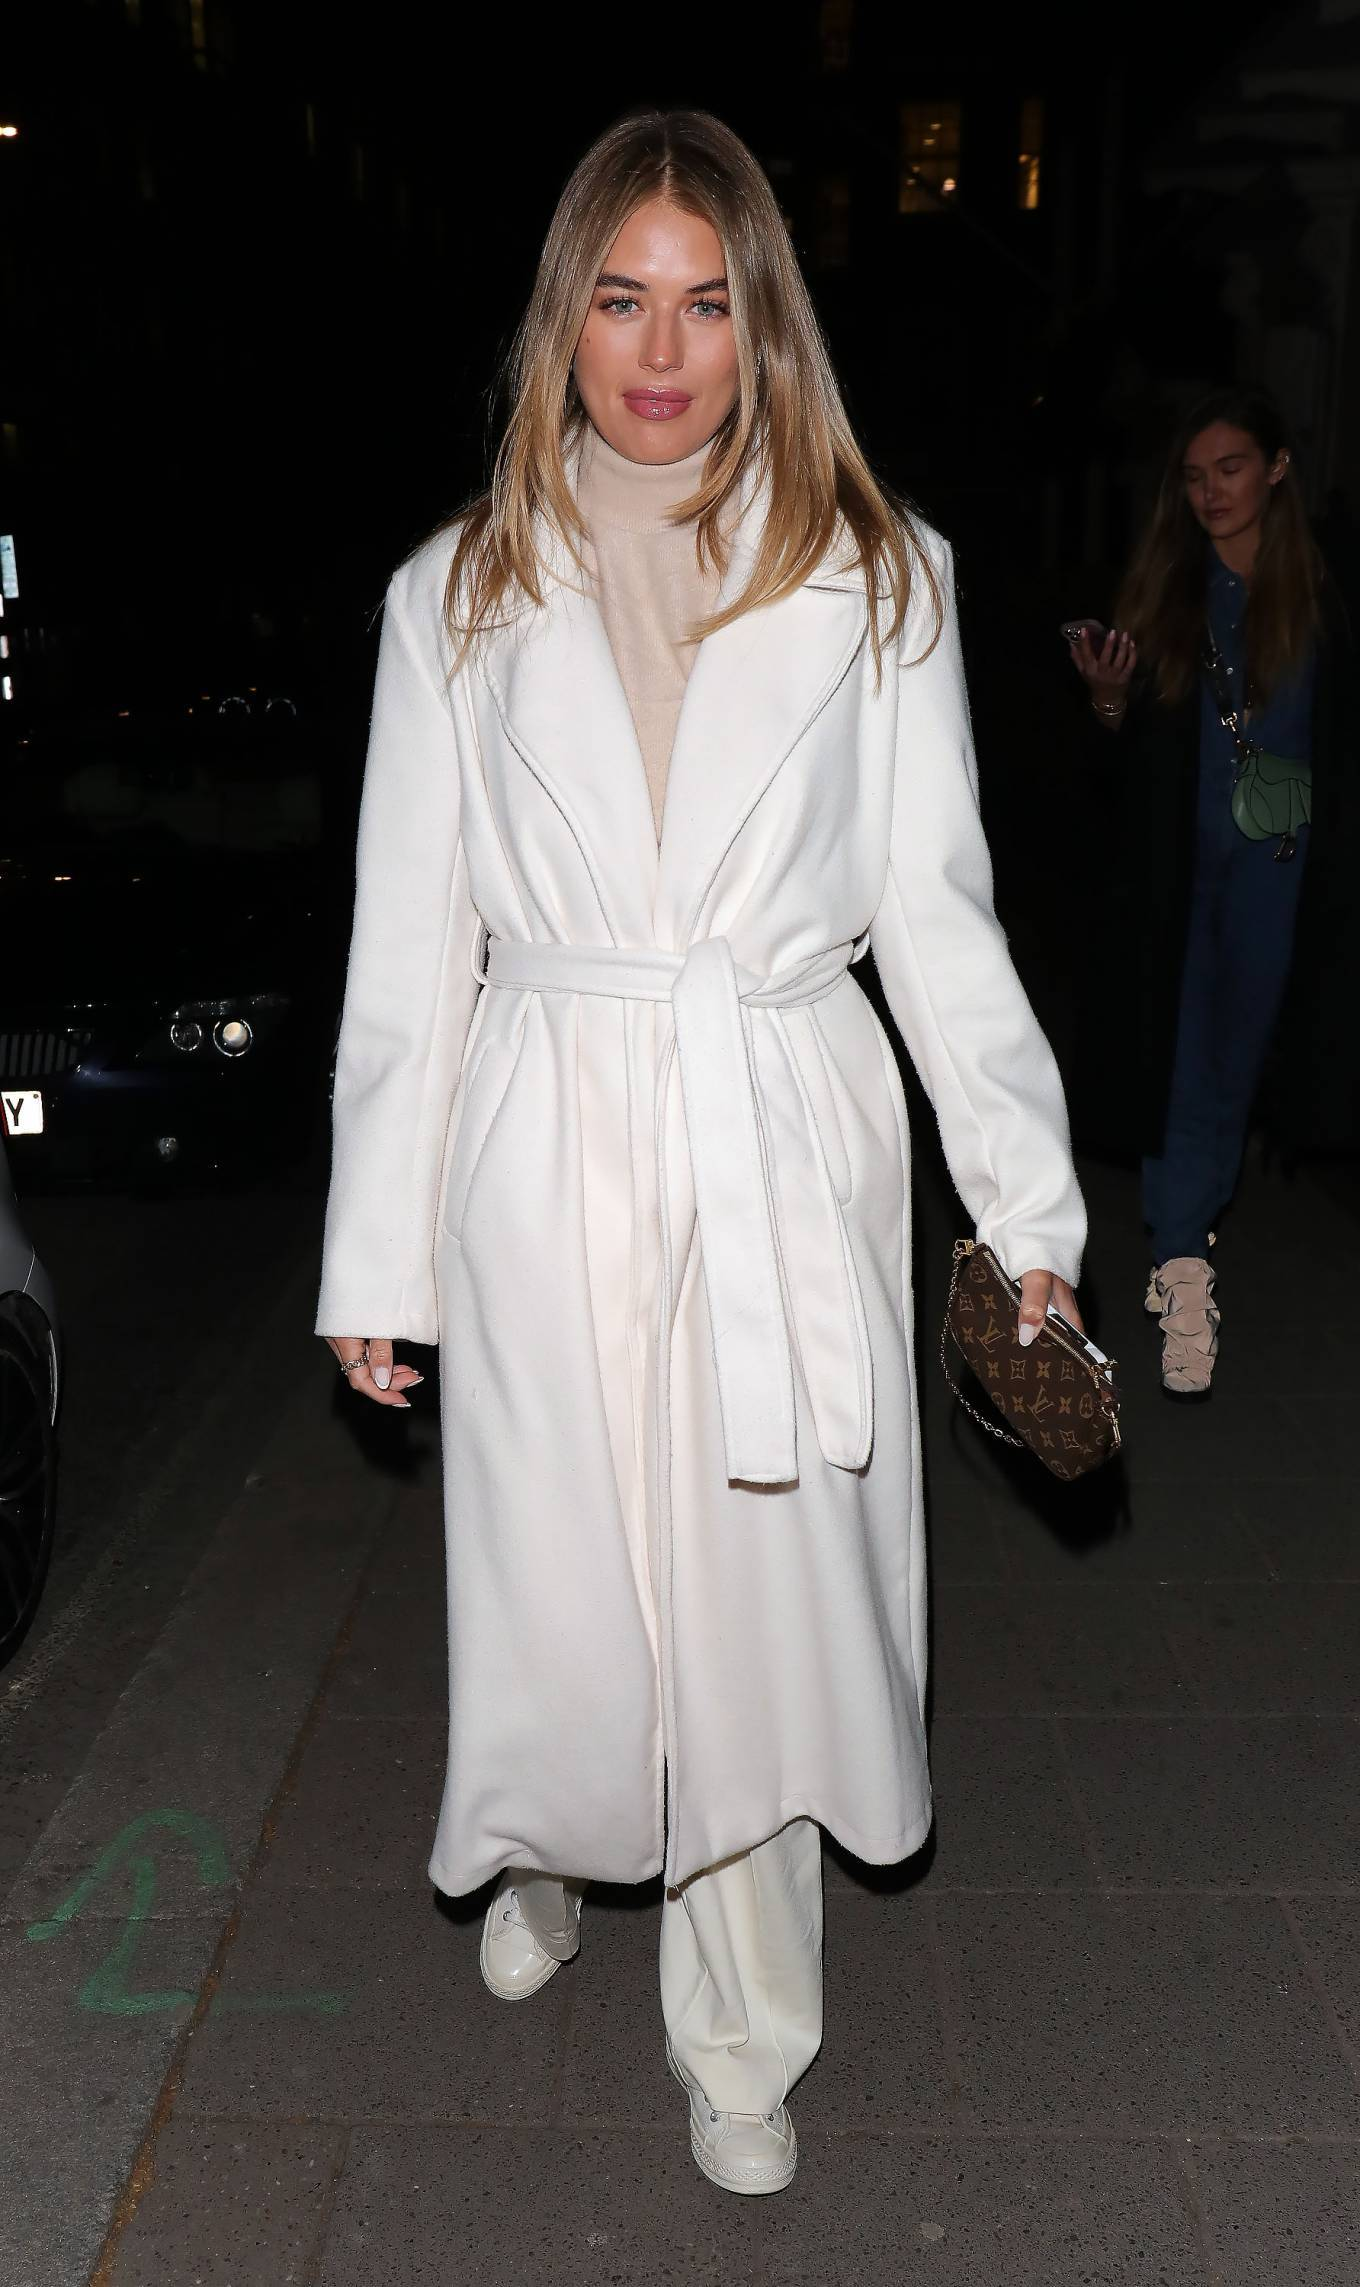 Arabella Chi - Night out at Annabel's club in Mayfair - London